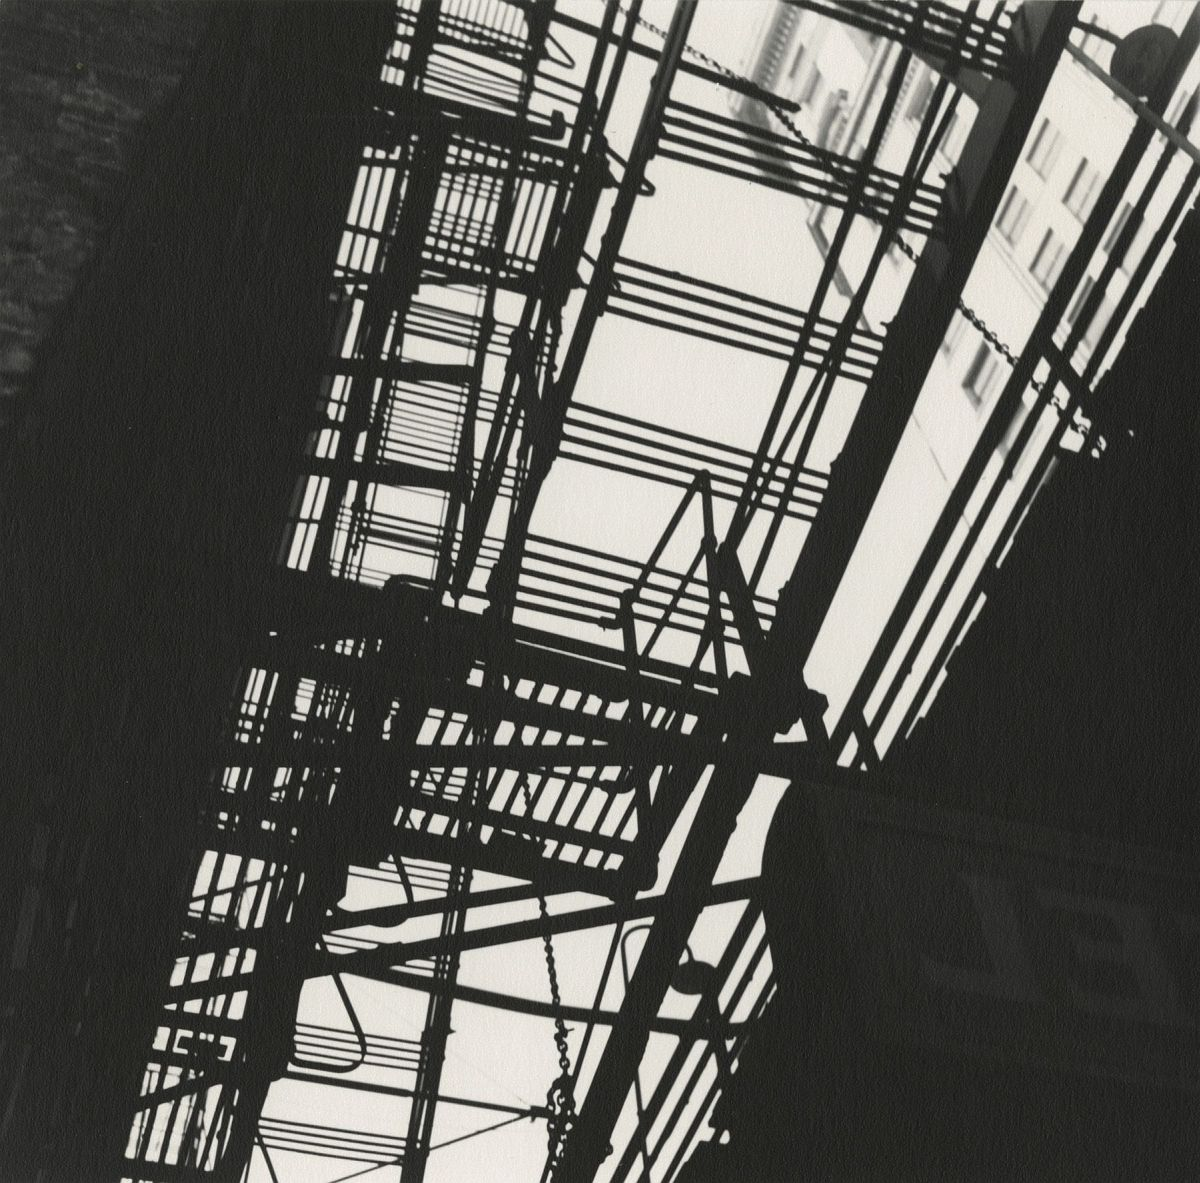 "FERENC BERKO Fire Escape, Chicago, 1947   Photographer's negative number ""1018-12"" and Estate number ""1368-1"" in pencil on print verso, 1947     Early gelatin silver print"